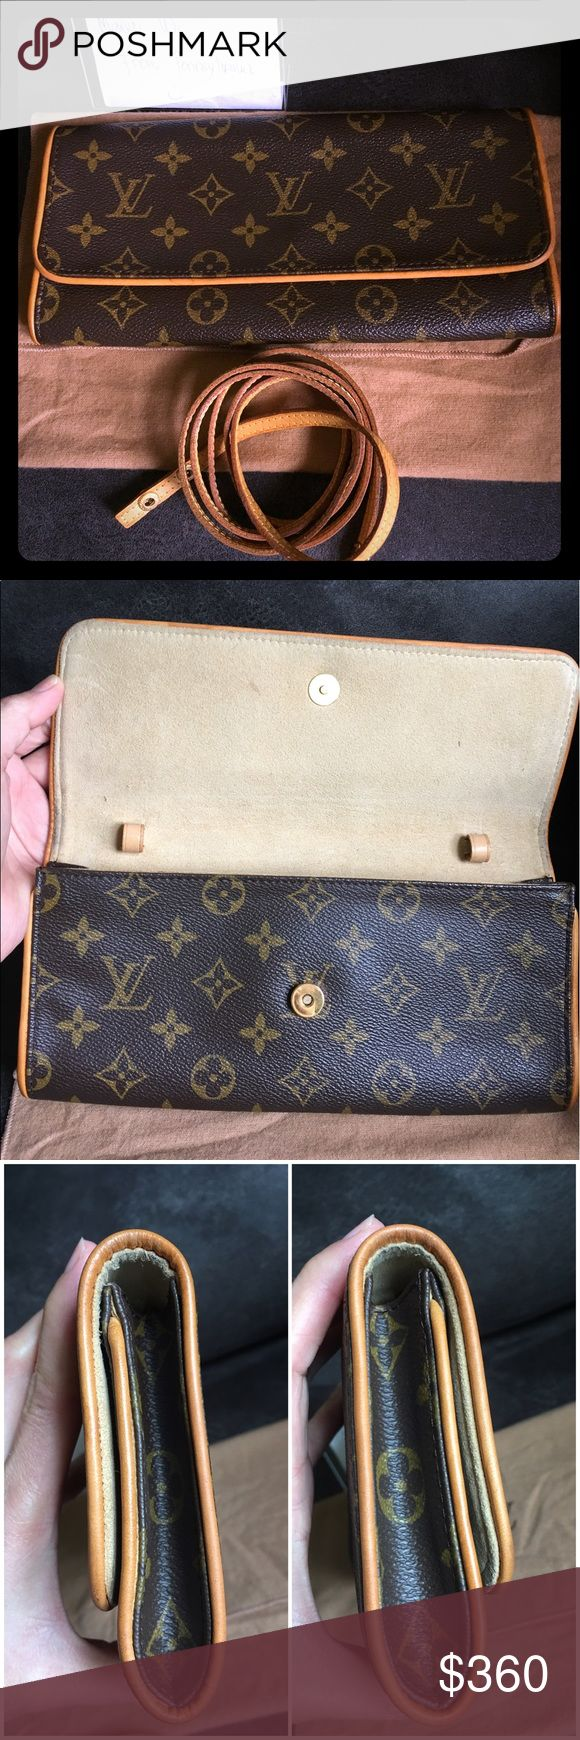 """Twin pochette GM With dustbag only. Normal signs of wear, no water marks in the strap. Inside the bag no foul odor , in the each side inside of the bag has little dirt. One nick on the outside corner. AUTHENTIC LOUIS VUITTON POCHETTE TWIN GM  Pocket(Inside):Pocket*1 Color: Brown Material: Monogram Canvas, Leather Size(inch): W 9.4 × H 4.5 × D 1.2 """" Shoulder (inch): 19.7 """" Size(cm): W 24.0 × H 11.5 × D 3.0 cm Shoulder (cm):50.0 cm Louis Vuitton Bags Crossbody Bags"""